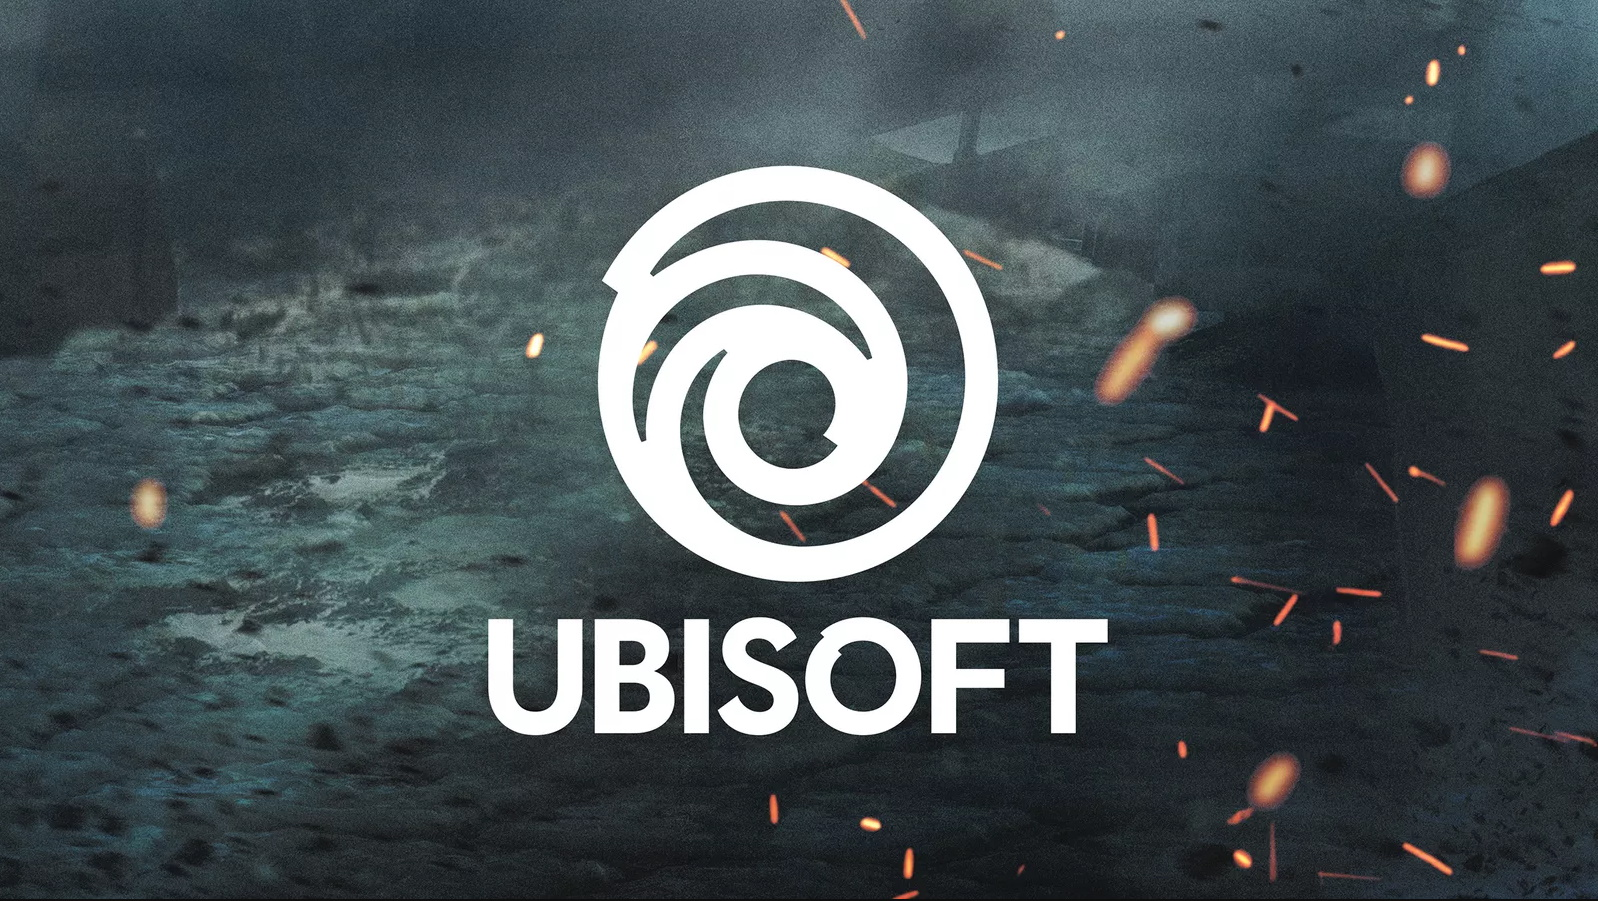 ubisoft-details-5-point-action-plan-to-tackle-sexual-harassment.jpg